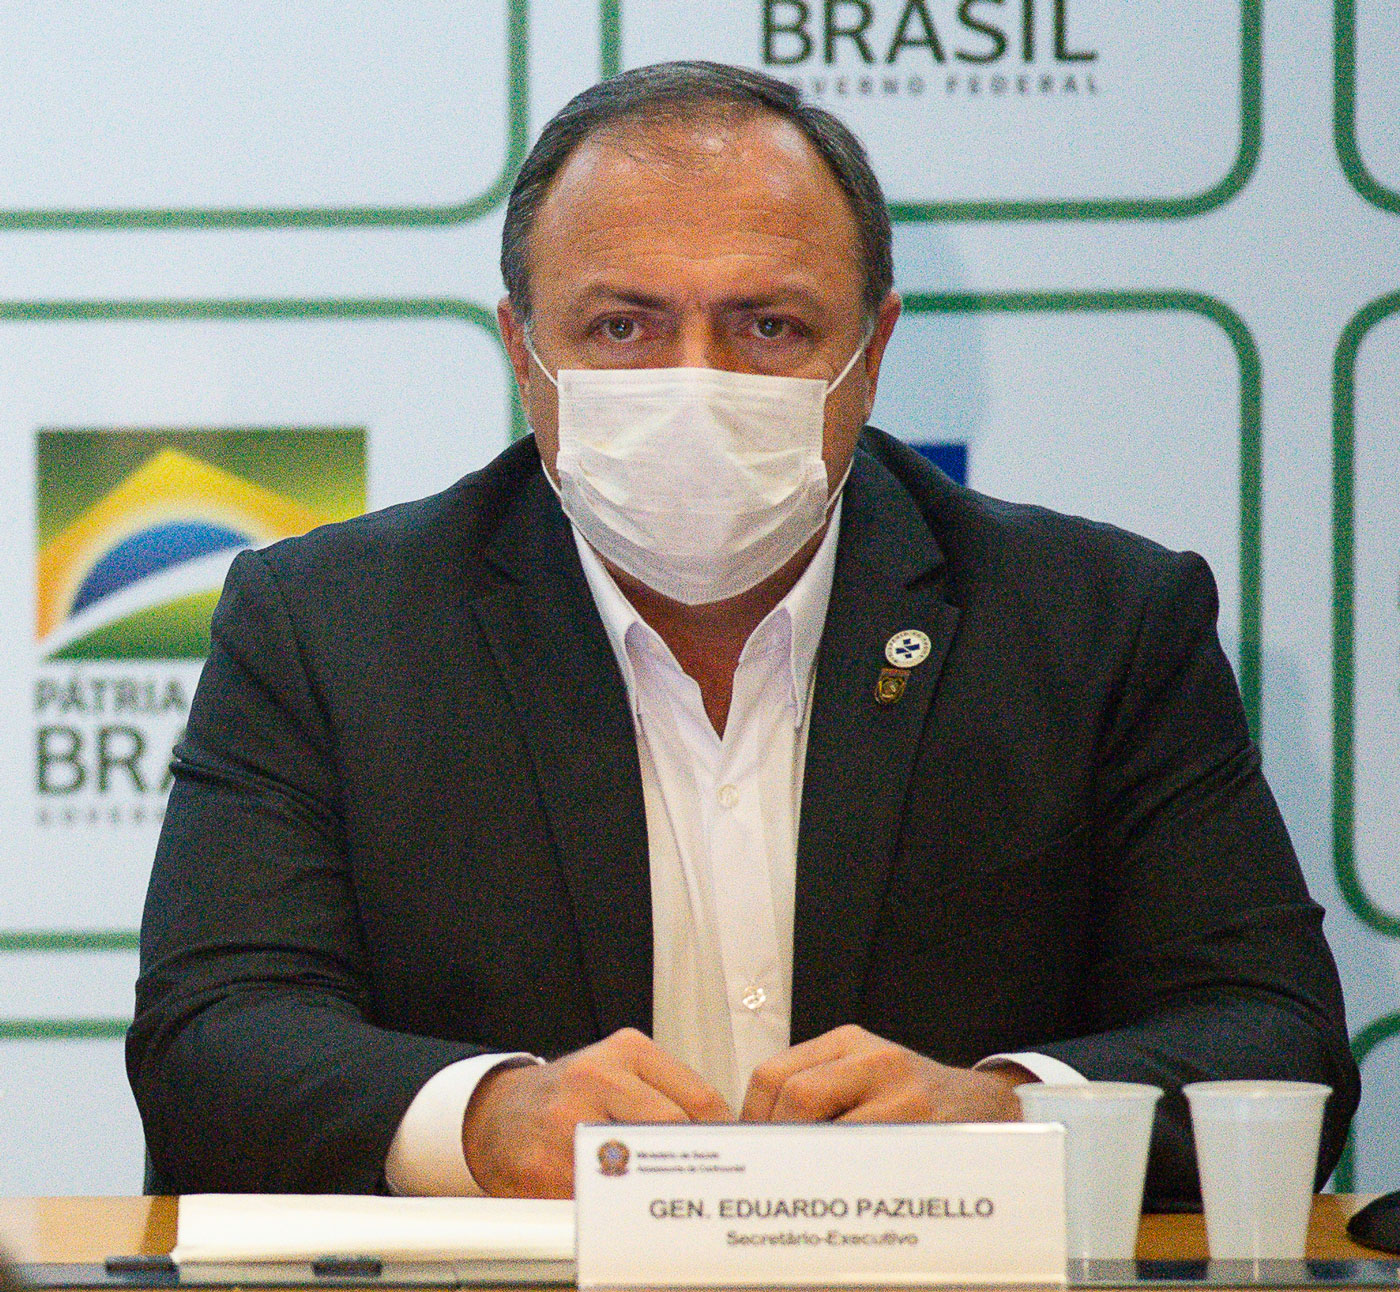 Executive Secretary of the Ministry Health Eduardo Pazuello sits during a press conference at the Ministry of Health on May 15 in Brasilia, Brazil.